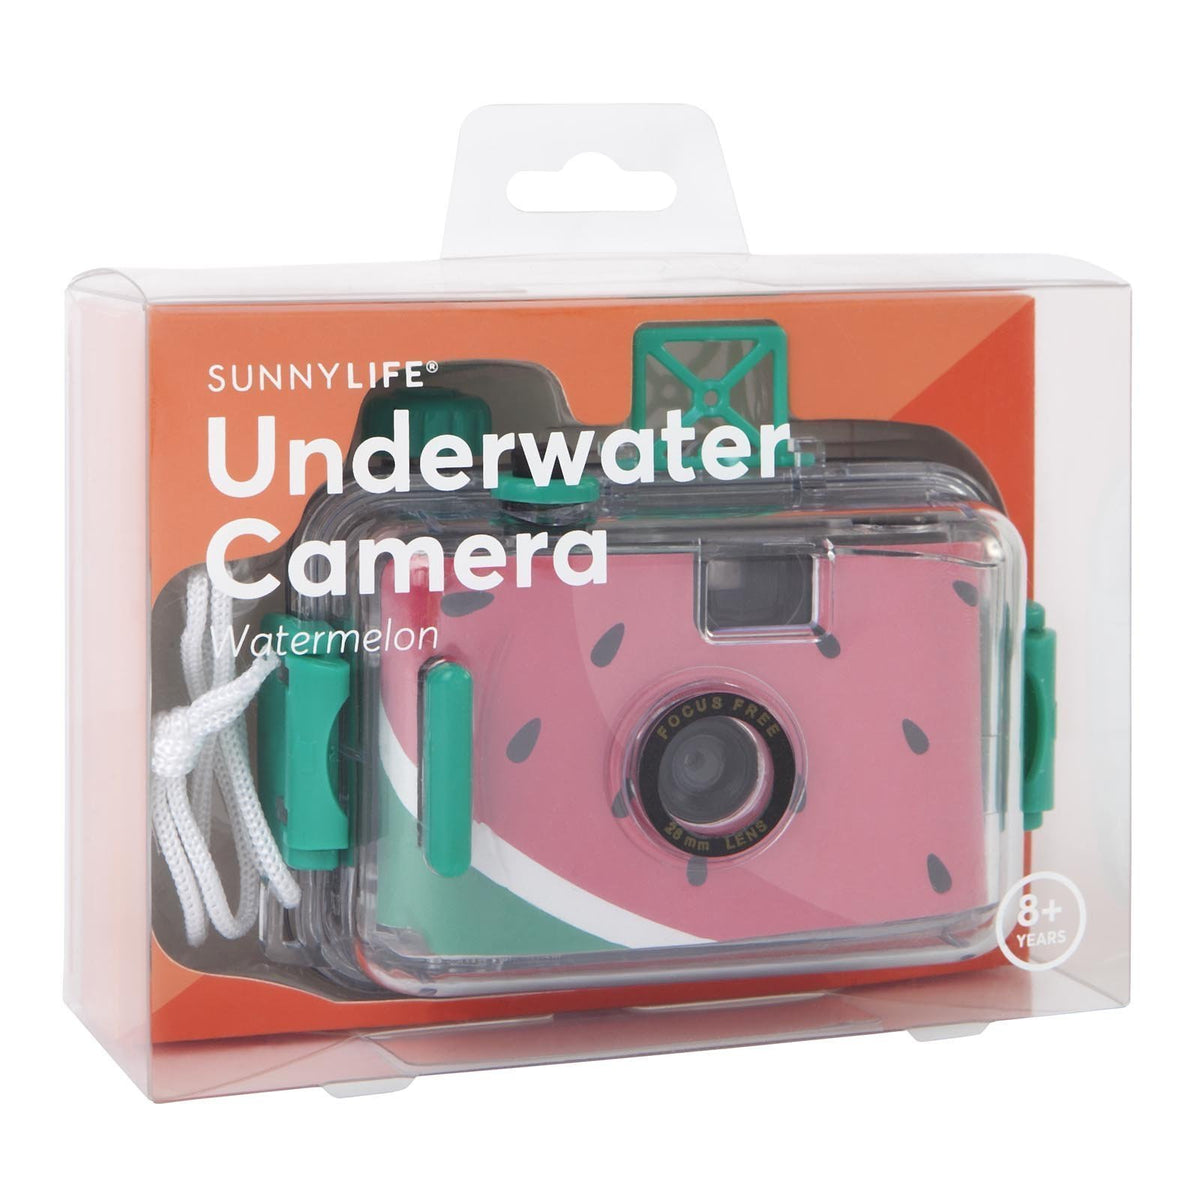 Sunnylife | Underwater Camera | Watermelon